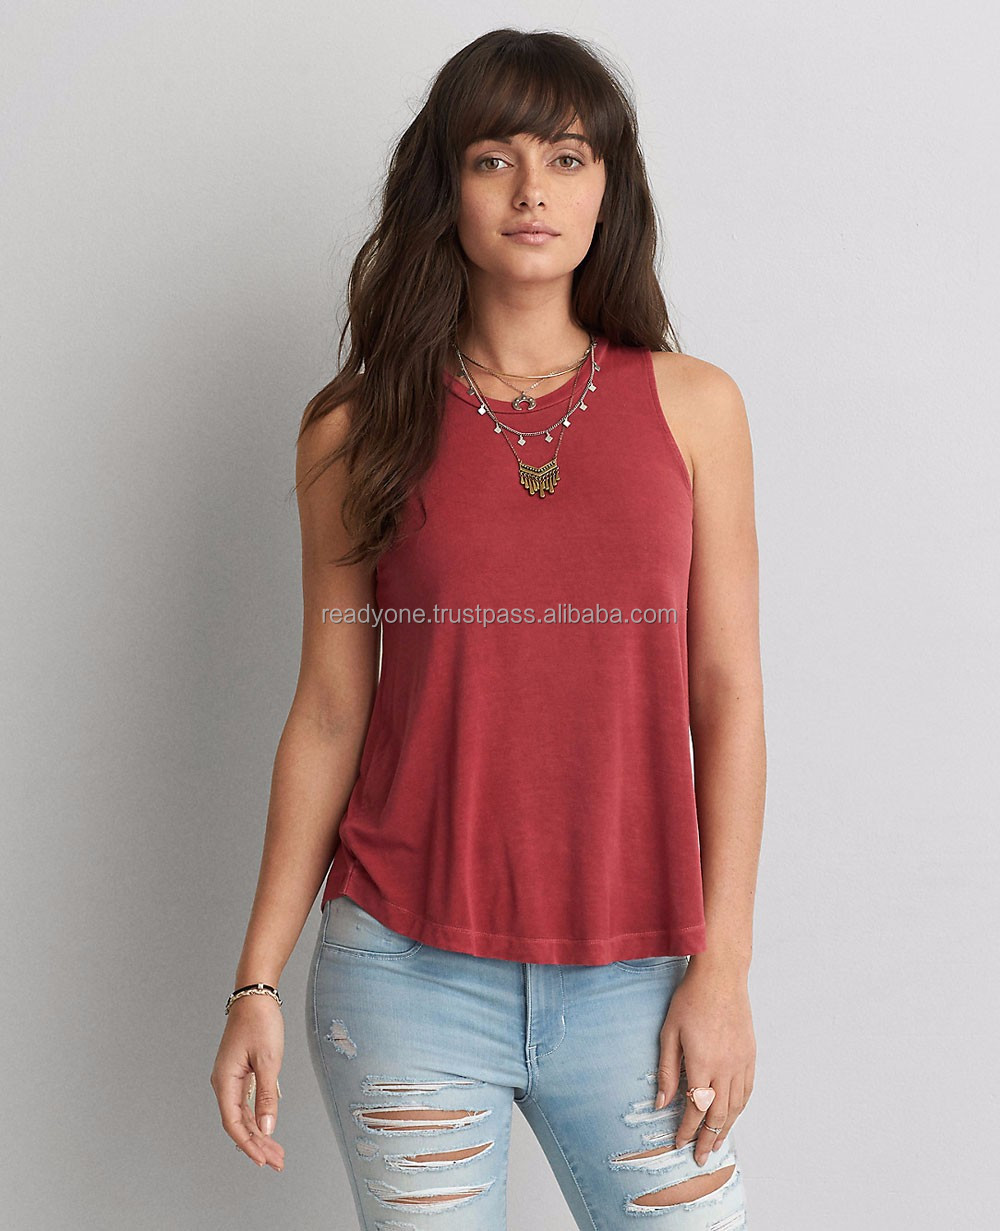 Raw neckline sleeveless women tank top,embroidered cotton tops women india